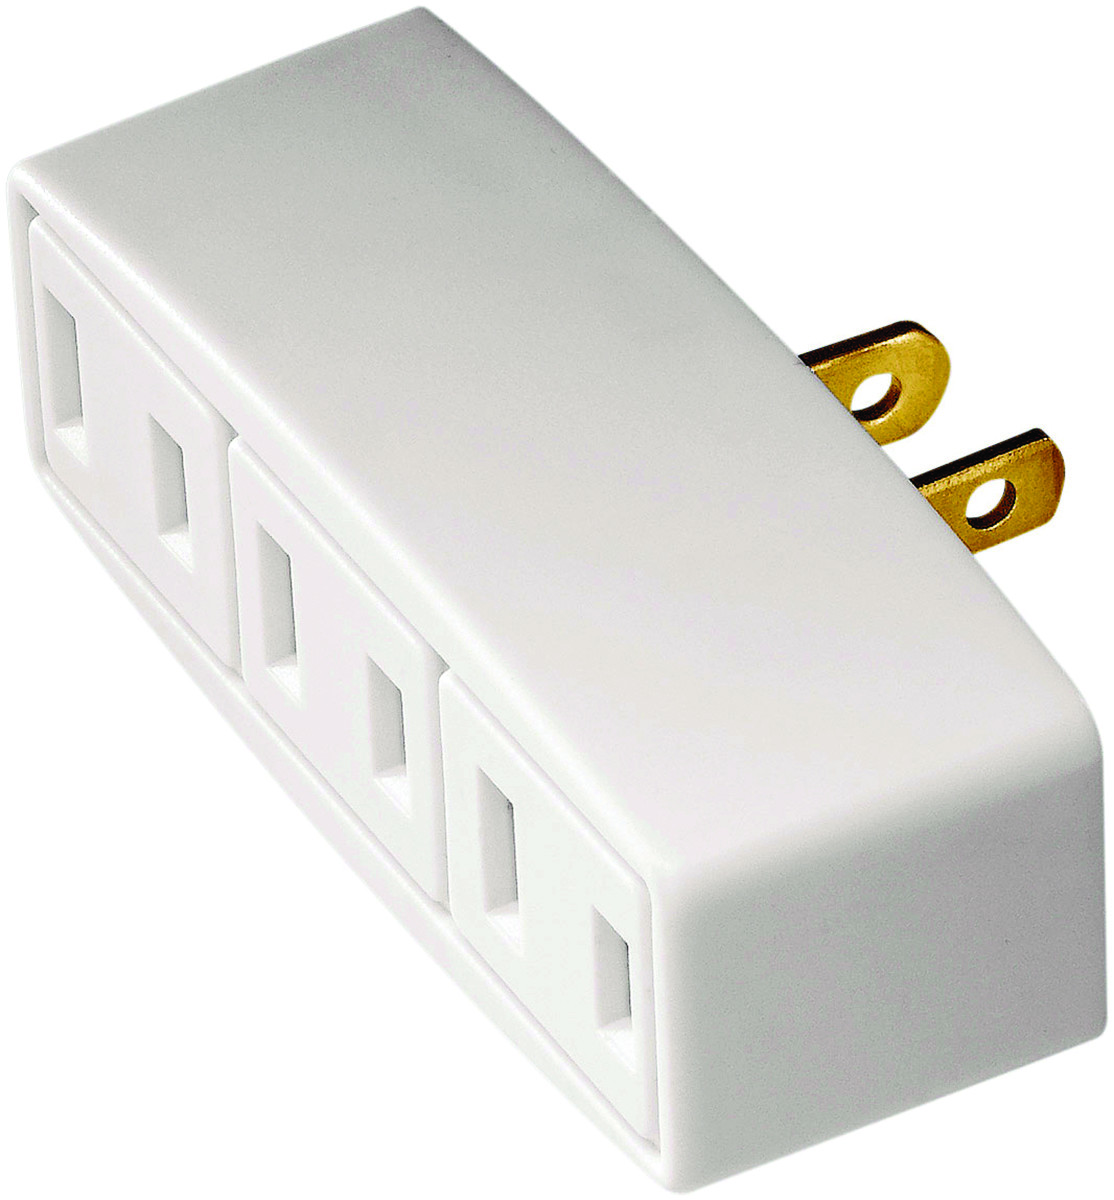 Cooper Wiring Bp1747w Outlet Tap Adapter 125 Volt 15 Amp 3 Polarized To Expand